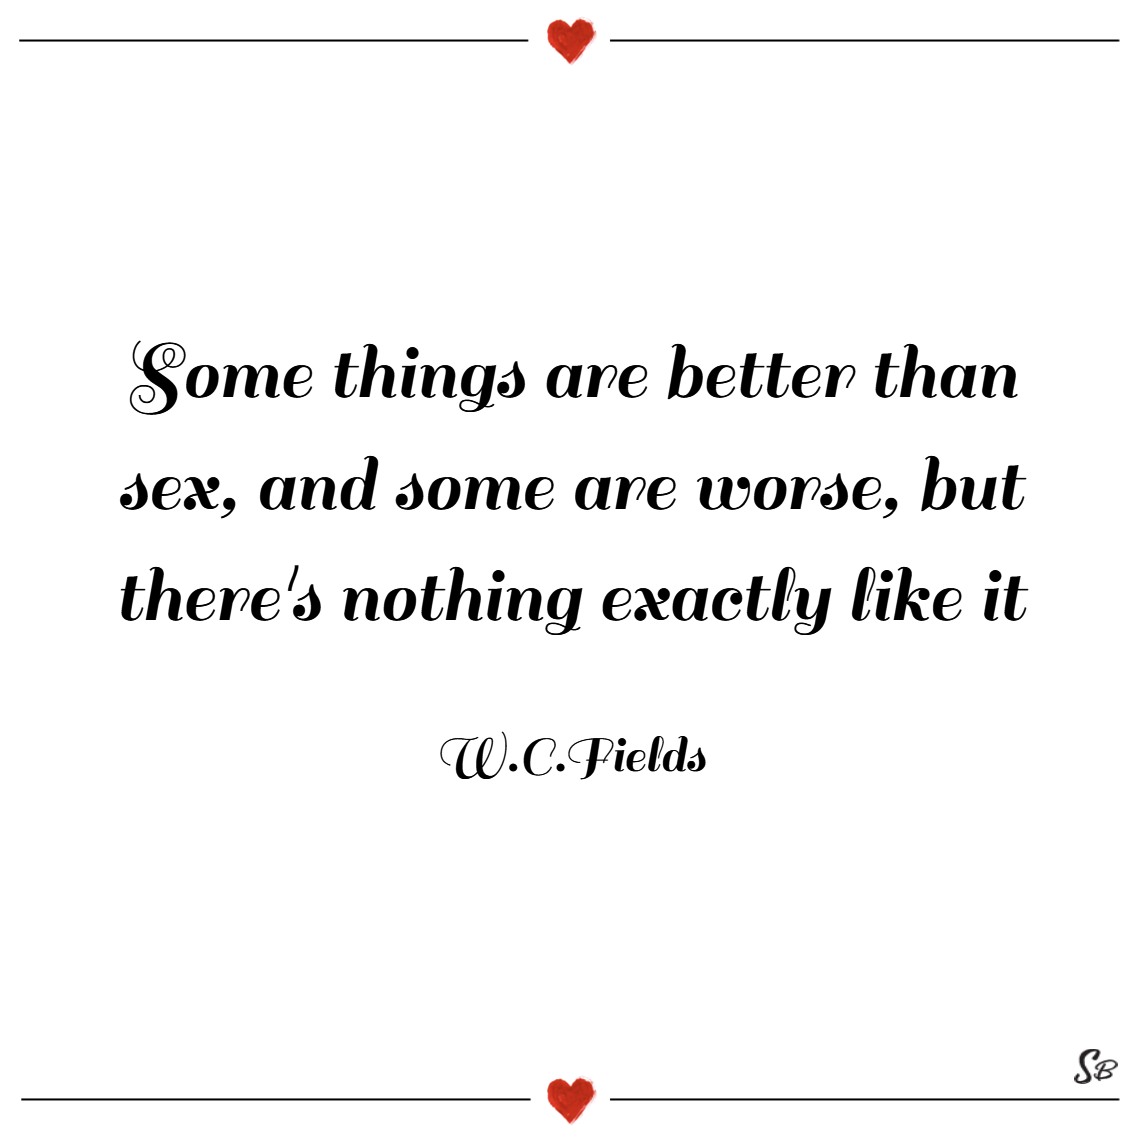 Some things are better than sex, and some are worse, but there's nothing exactly like it. – w. c. fields